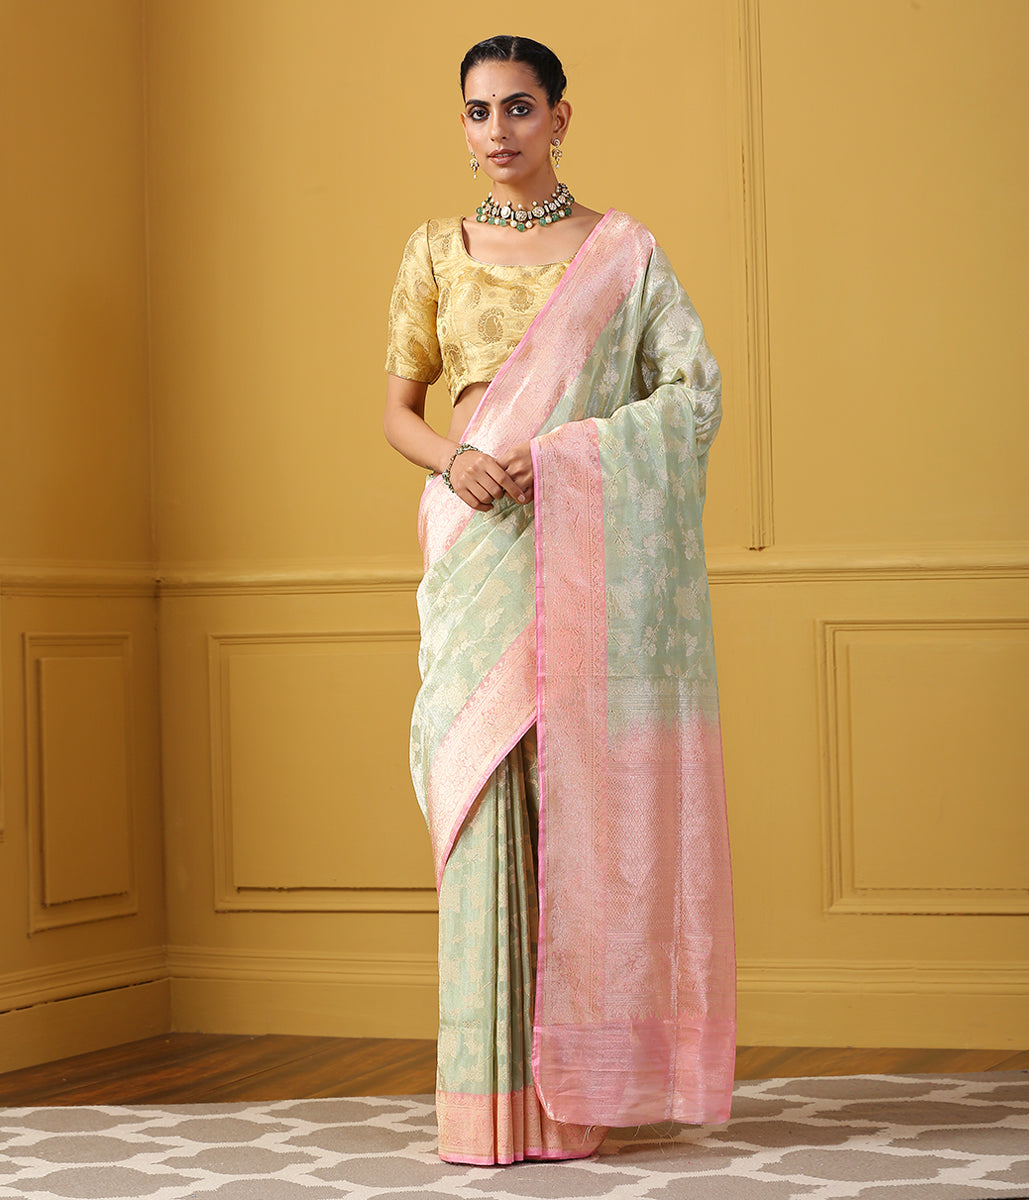 Handwoven Light Green Tissue Jangla Saree with Pink Kadhiyal Border